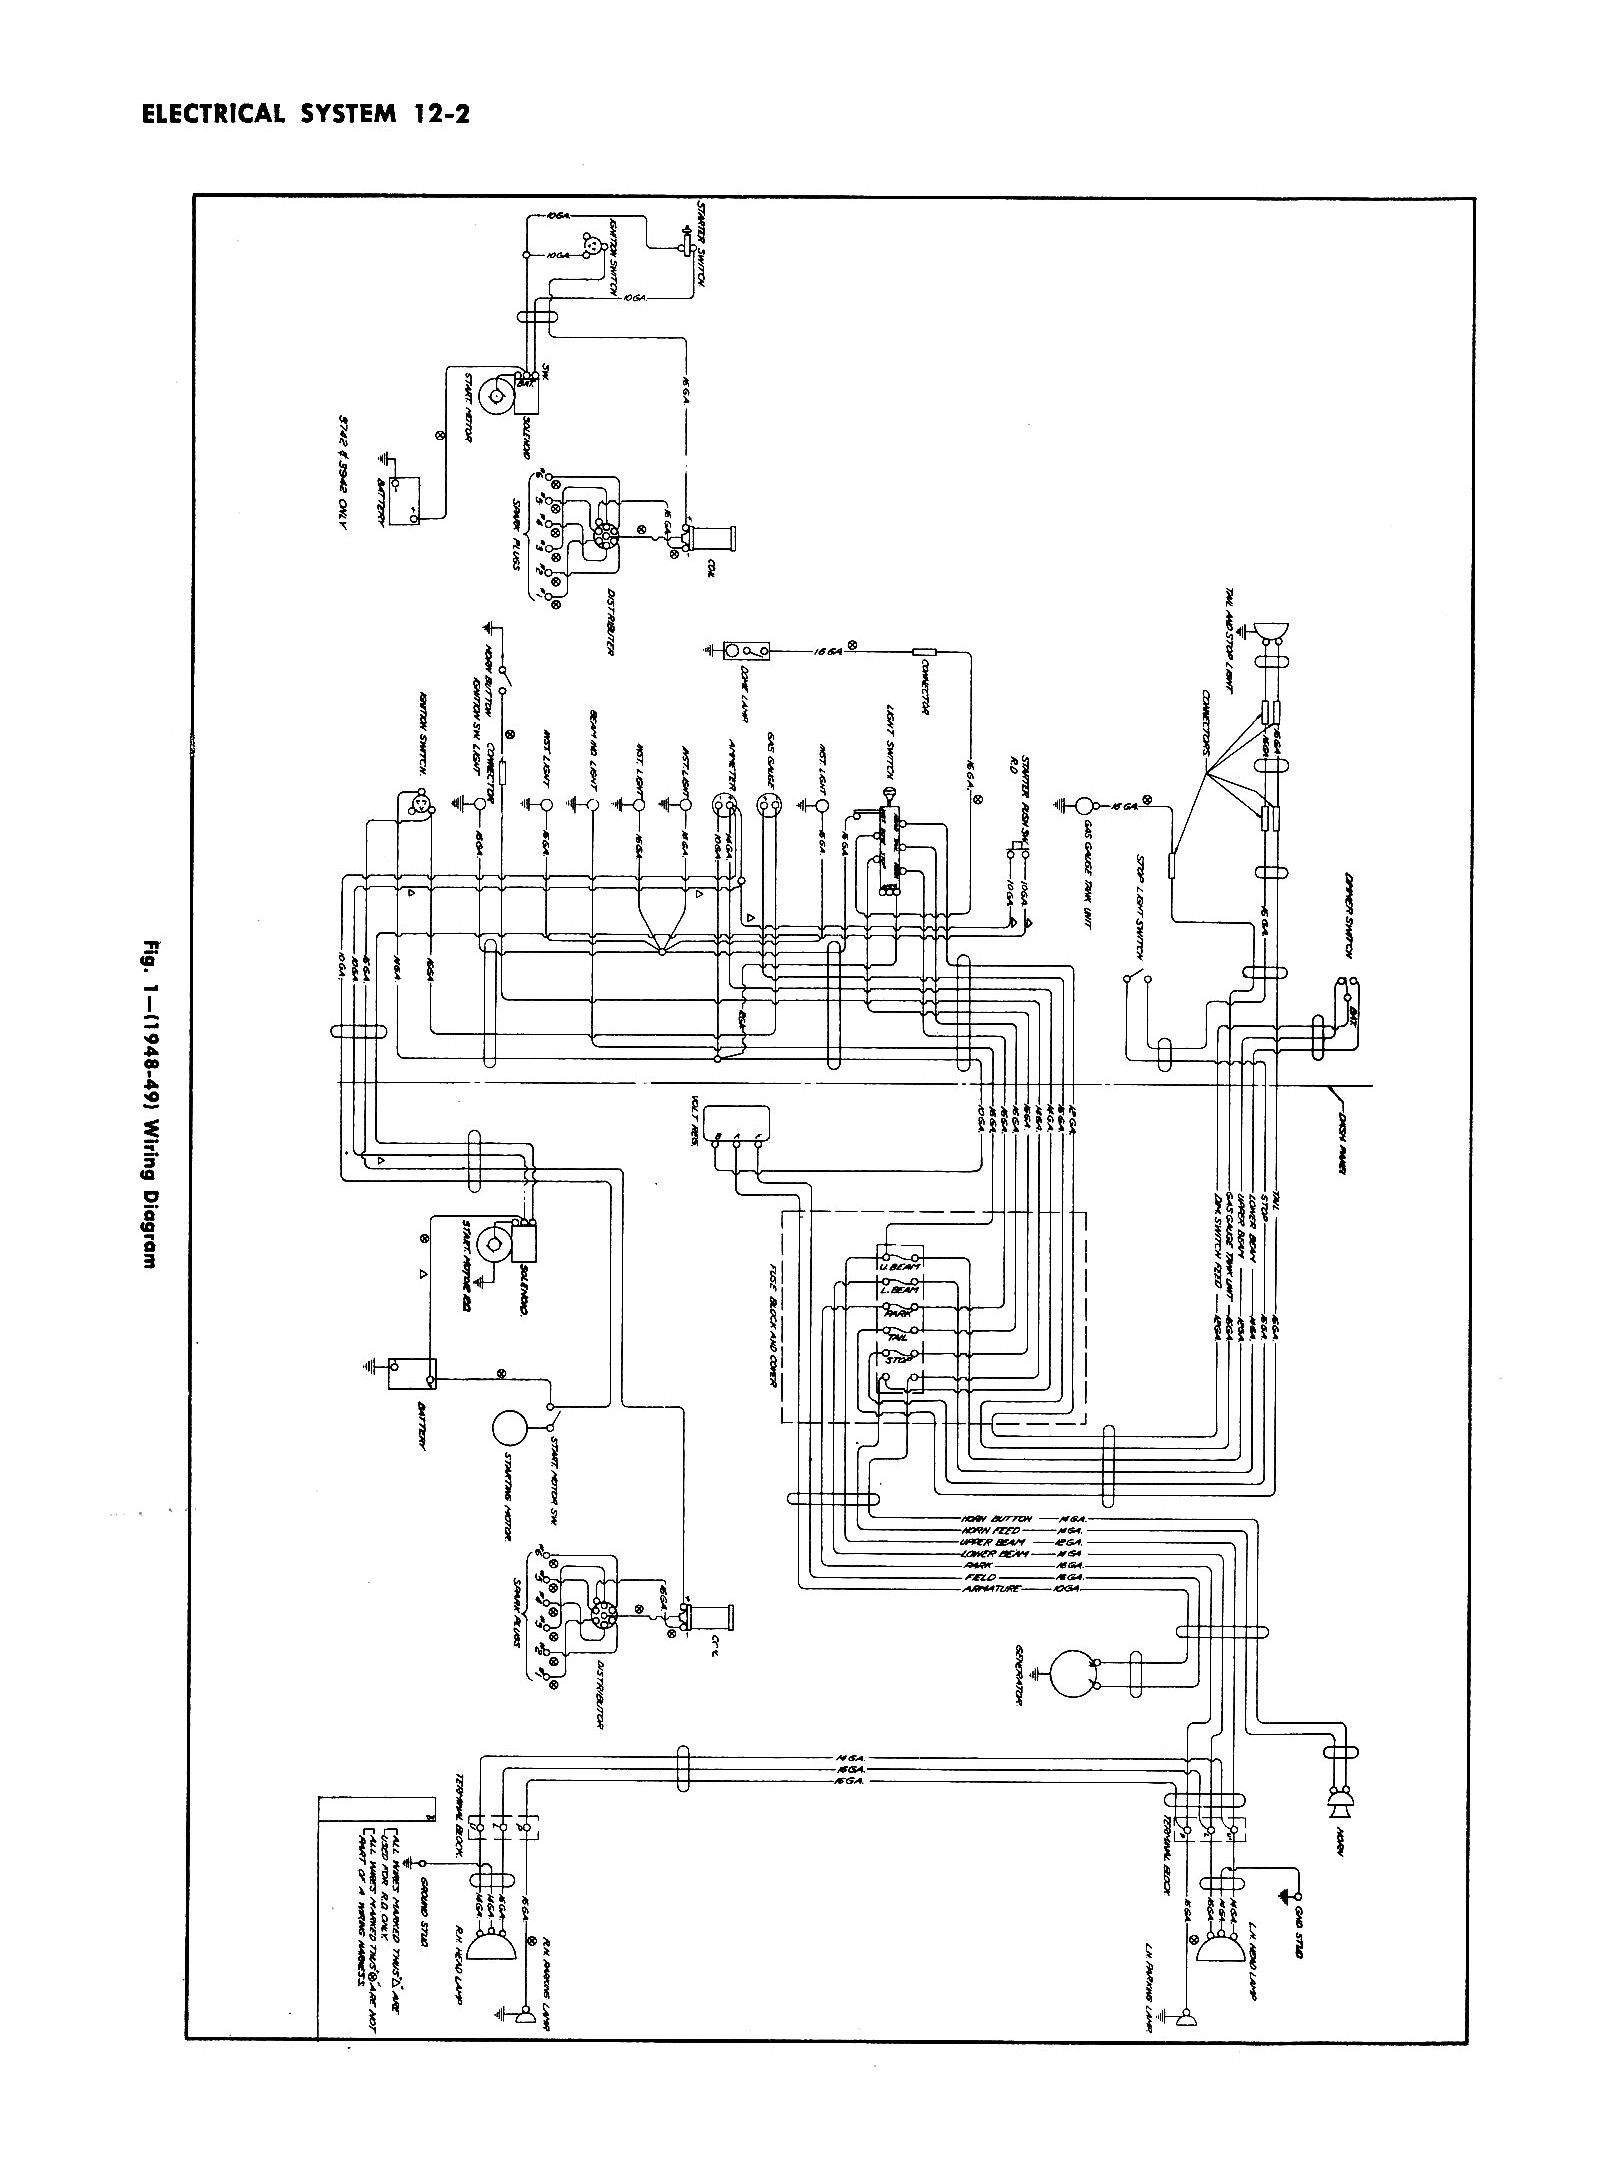 92 Gmc Van Wiring Diagram Free Picture Schematics Diagrams 1996 4l80e Schematic 1958 Experts Of U2022 Rh Evilcloud Co Uk 2011 Express Truck